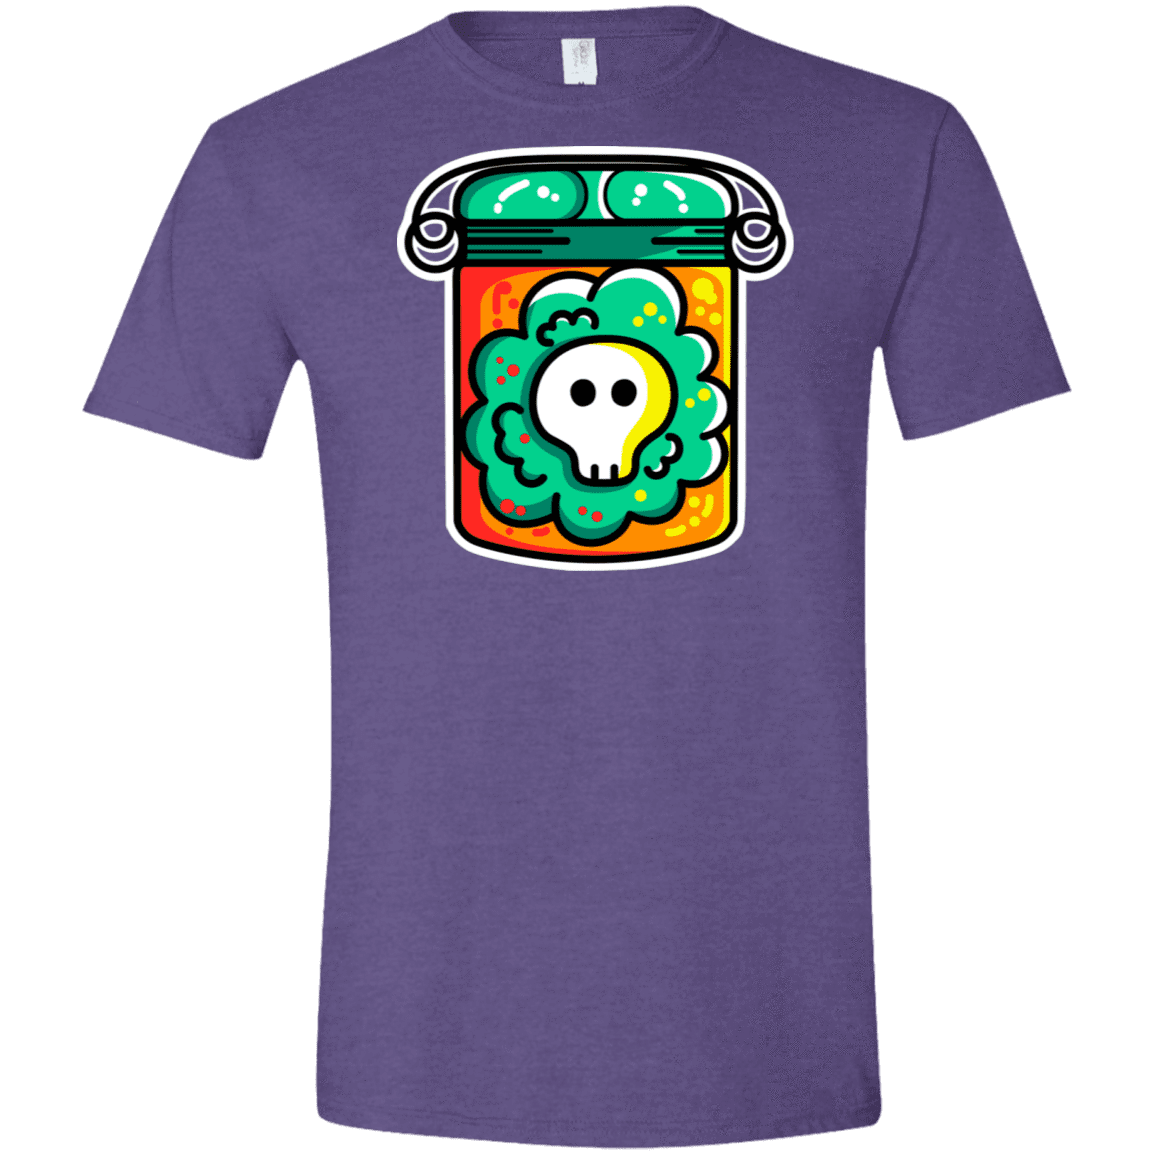 T-Shirts Heather Purple / S Cute Skull In A Jar Men's Semi-Fitted Softstyle